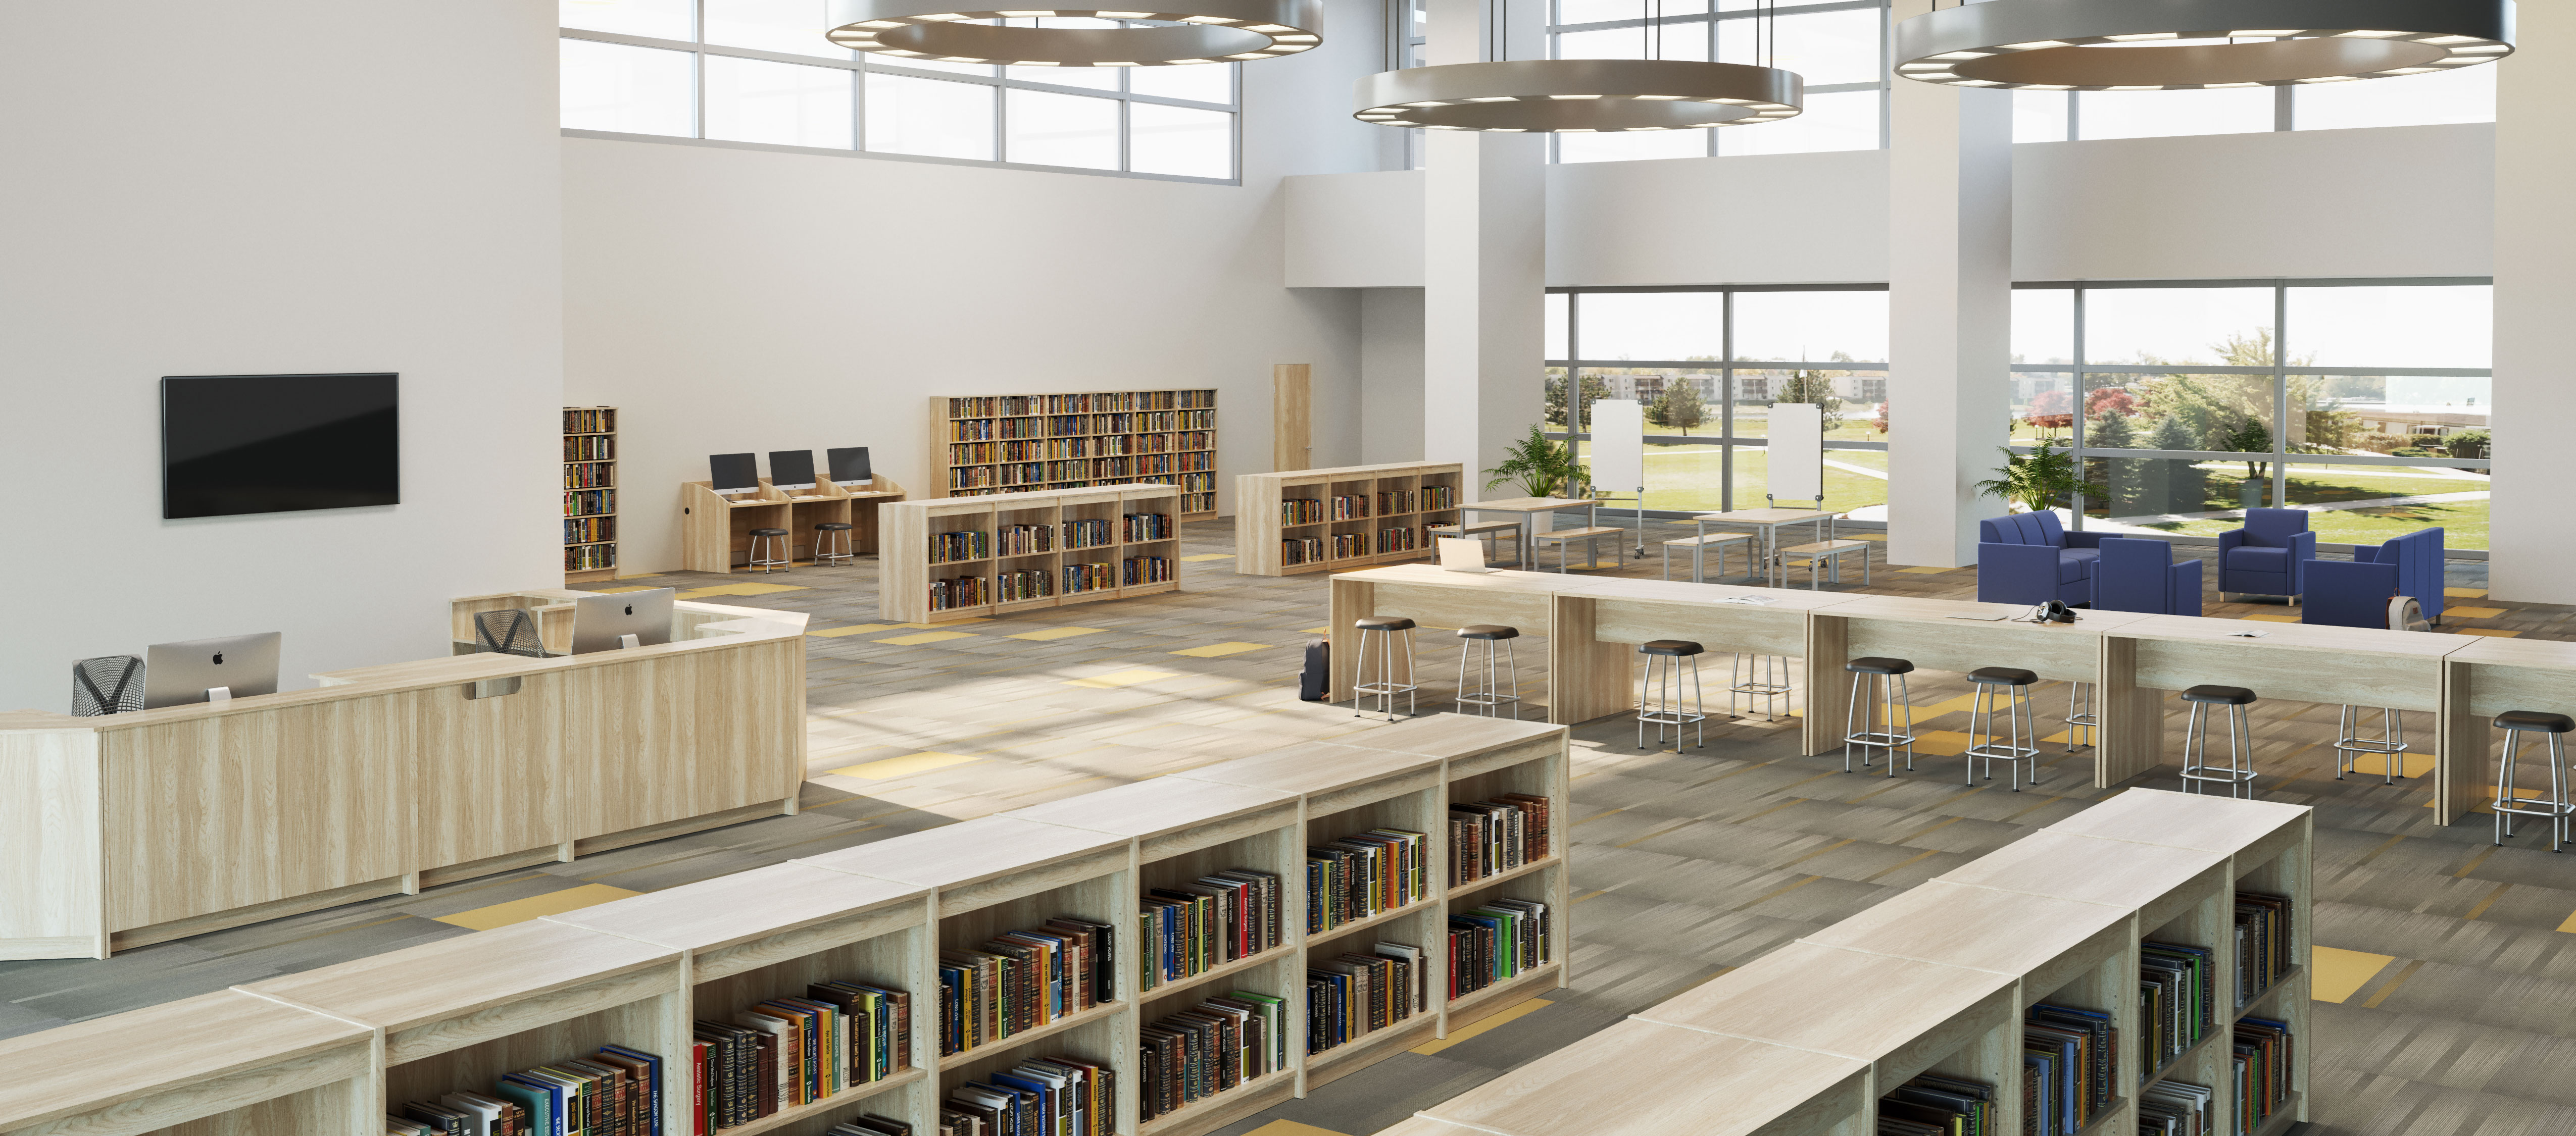 Rendering of the library collection